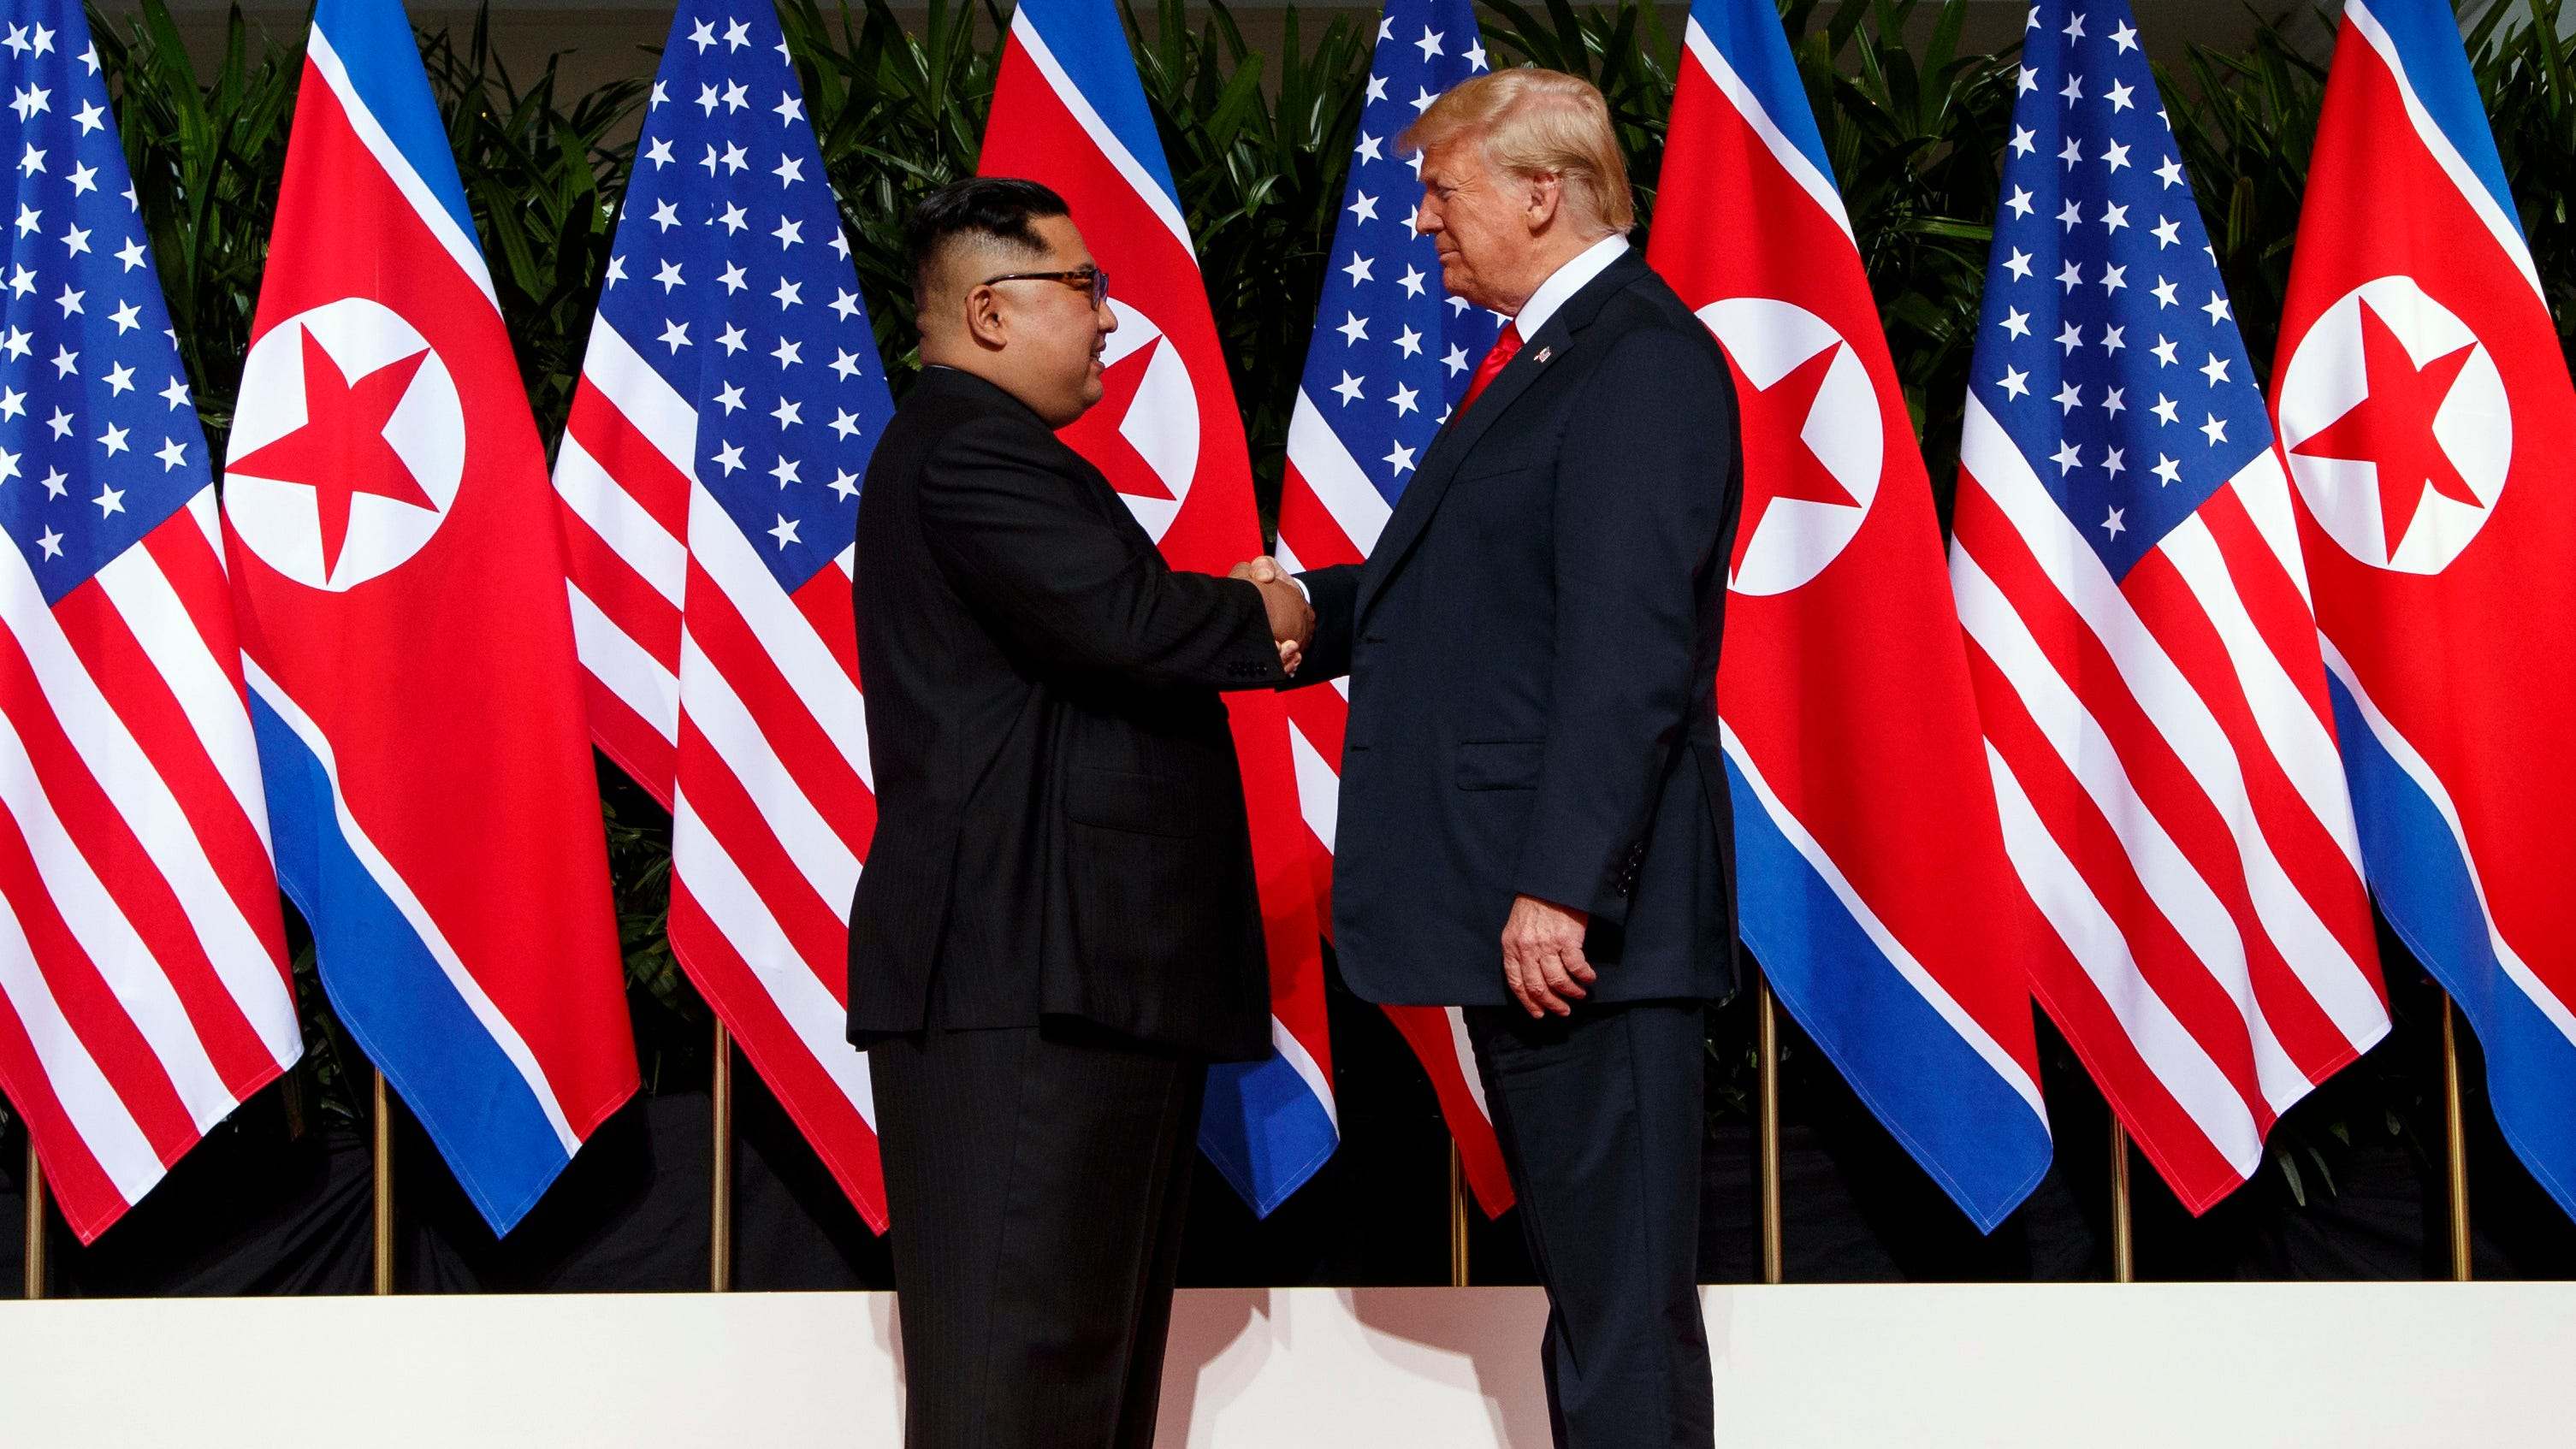 North Korean leader Kim Jong Un, left, and President Donald Trump shake hands on Sentosa Island in Singapore on June 12, 2018.